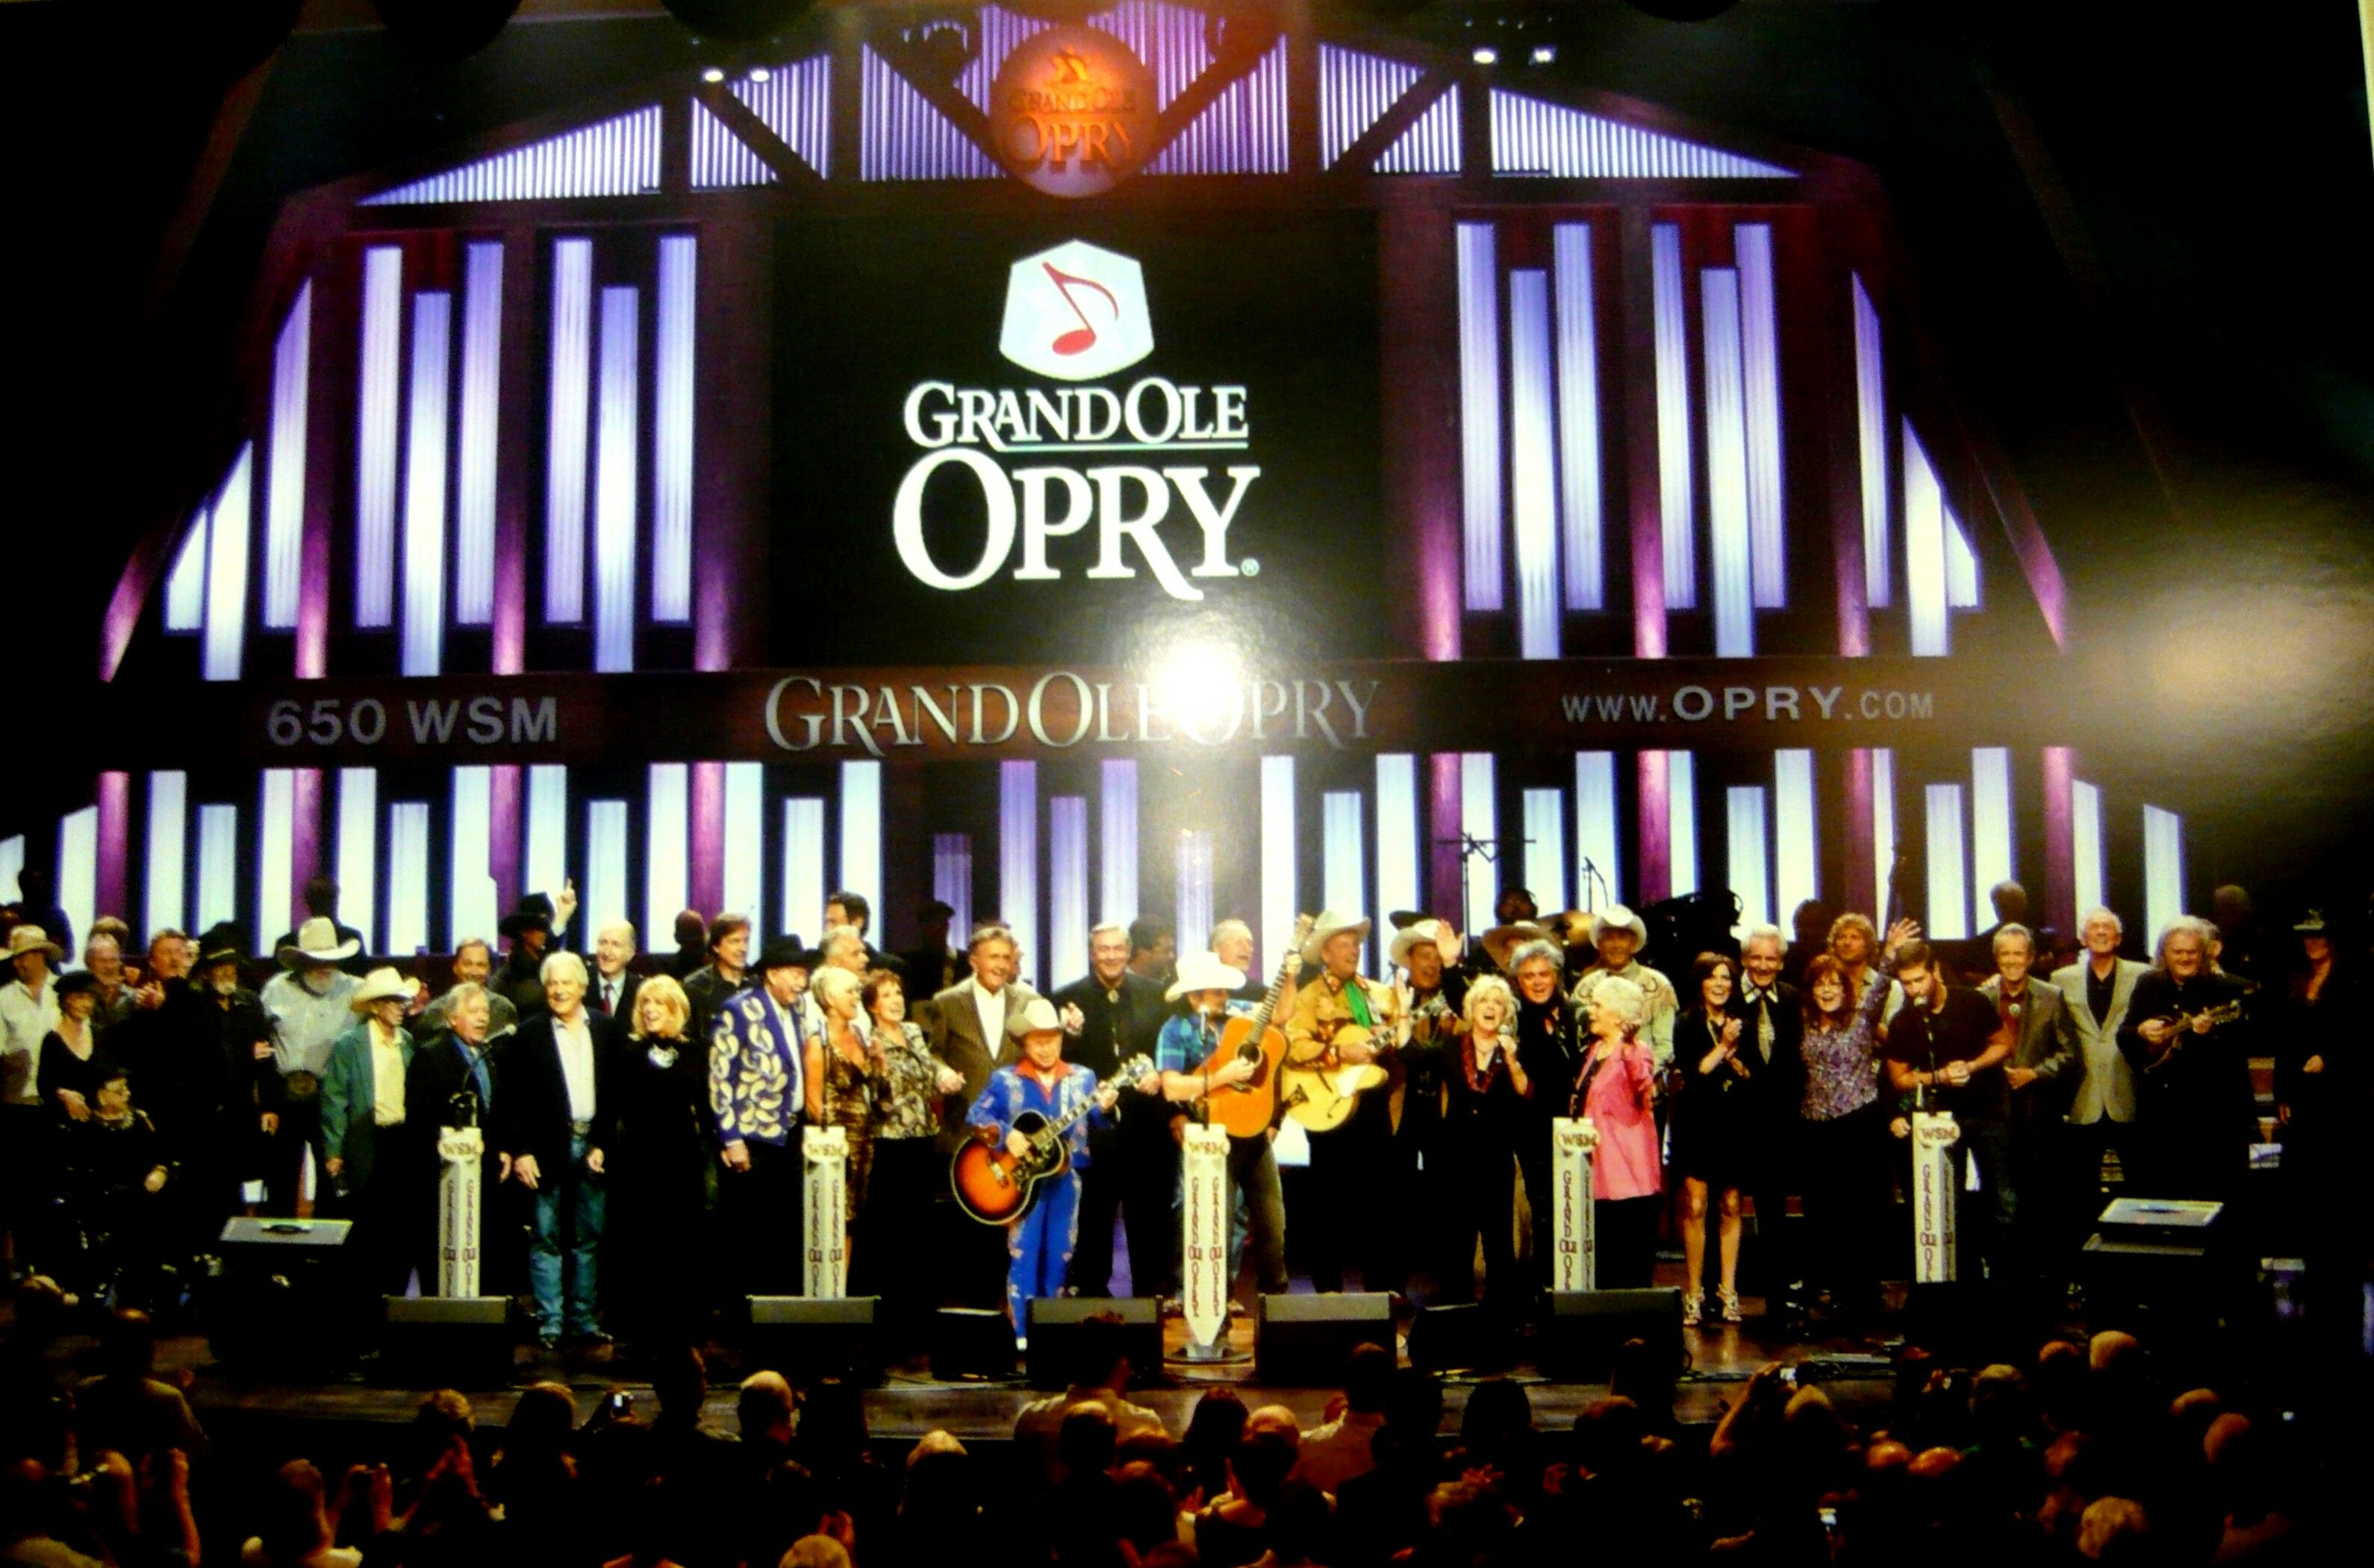 Back to Nashville and just before the performance of the Grande Ole Opry.